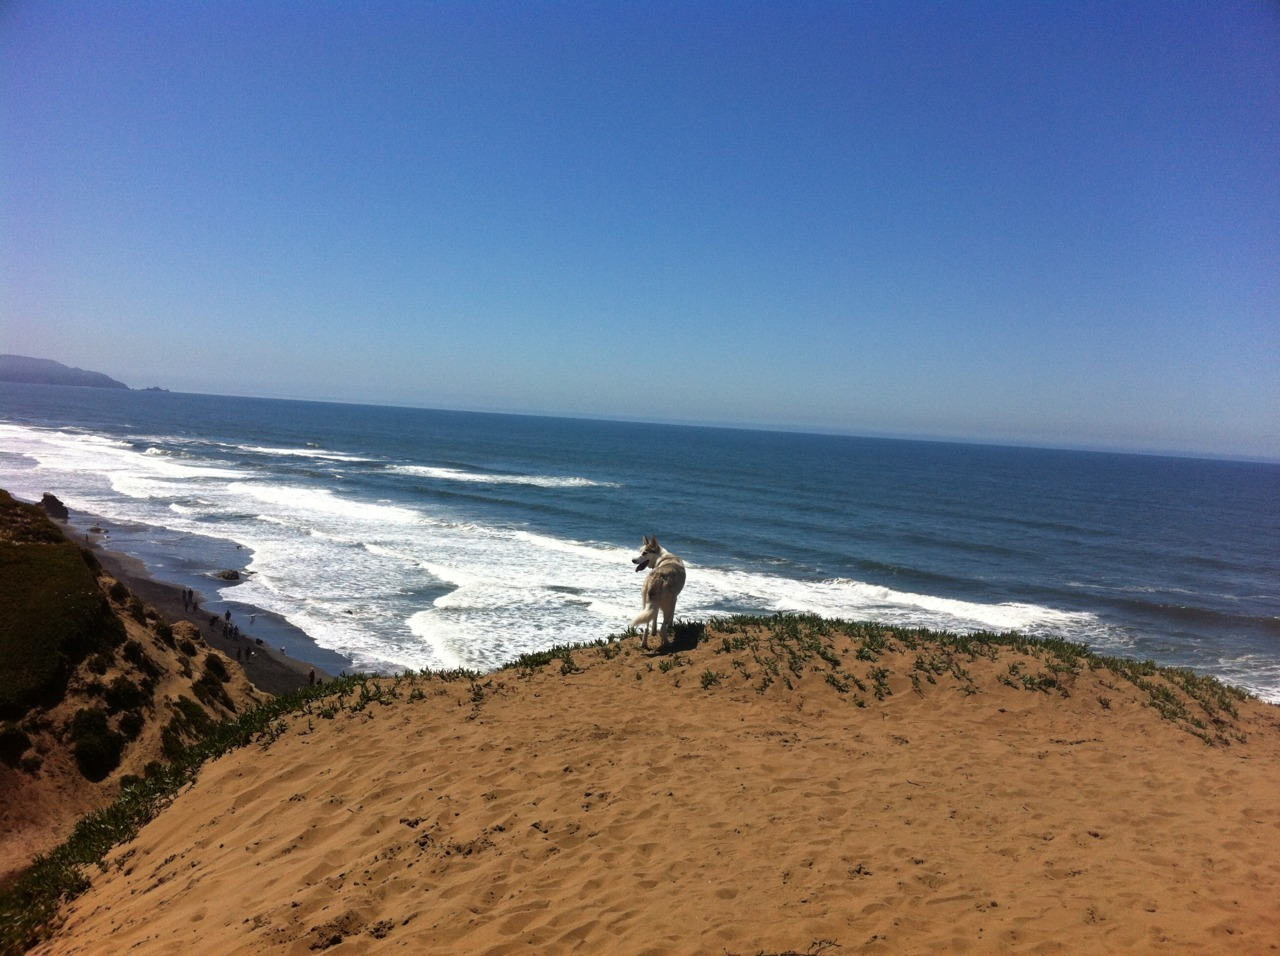 Spirit's non-stop day of birthday adventure started here at Fort FUNston, SF.  Off-leash paradise of rolling dunes filled with hidden paths and a huge stretch of beach down below.  Every dog MUST experience it!